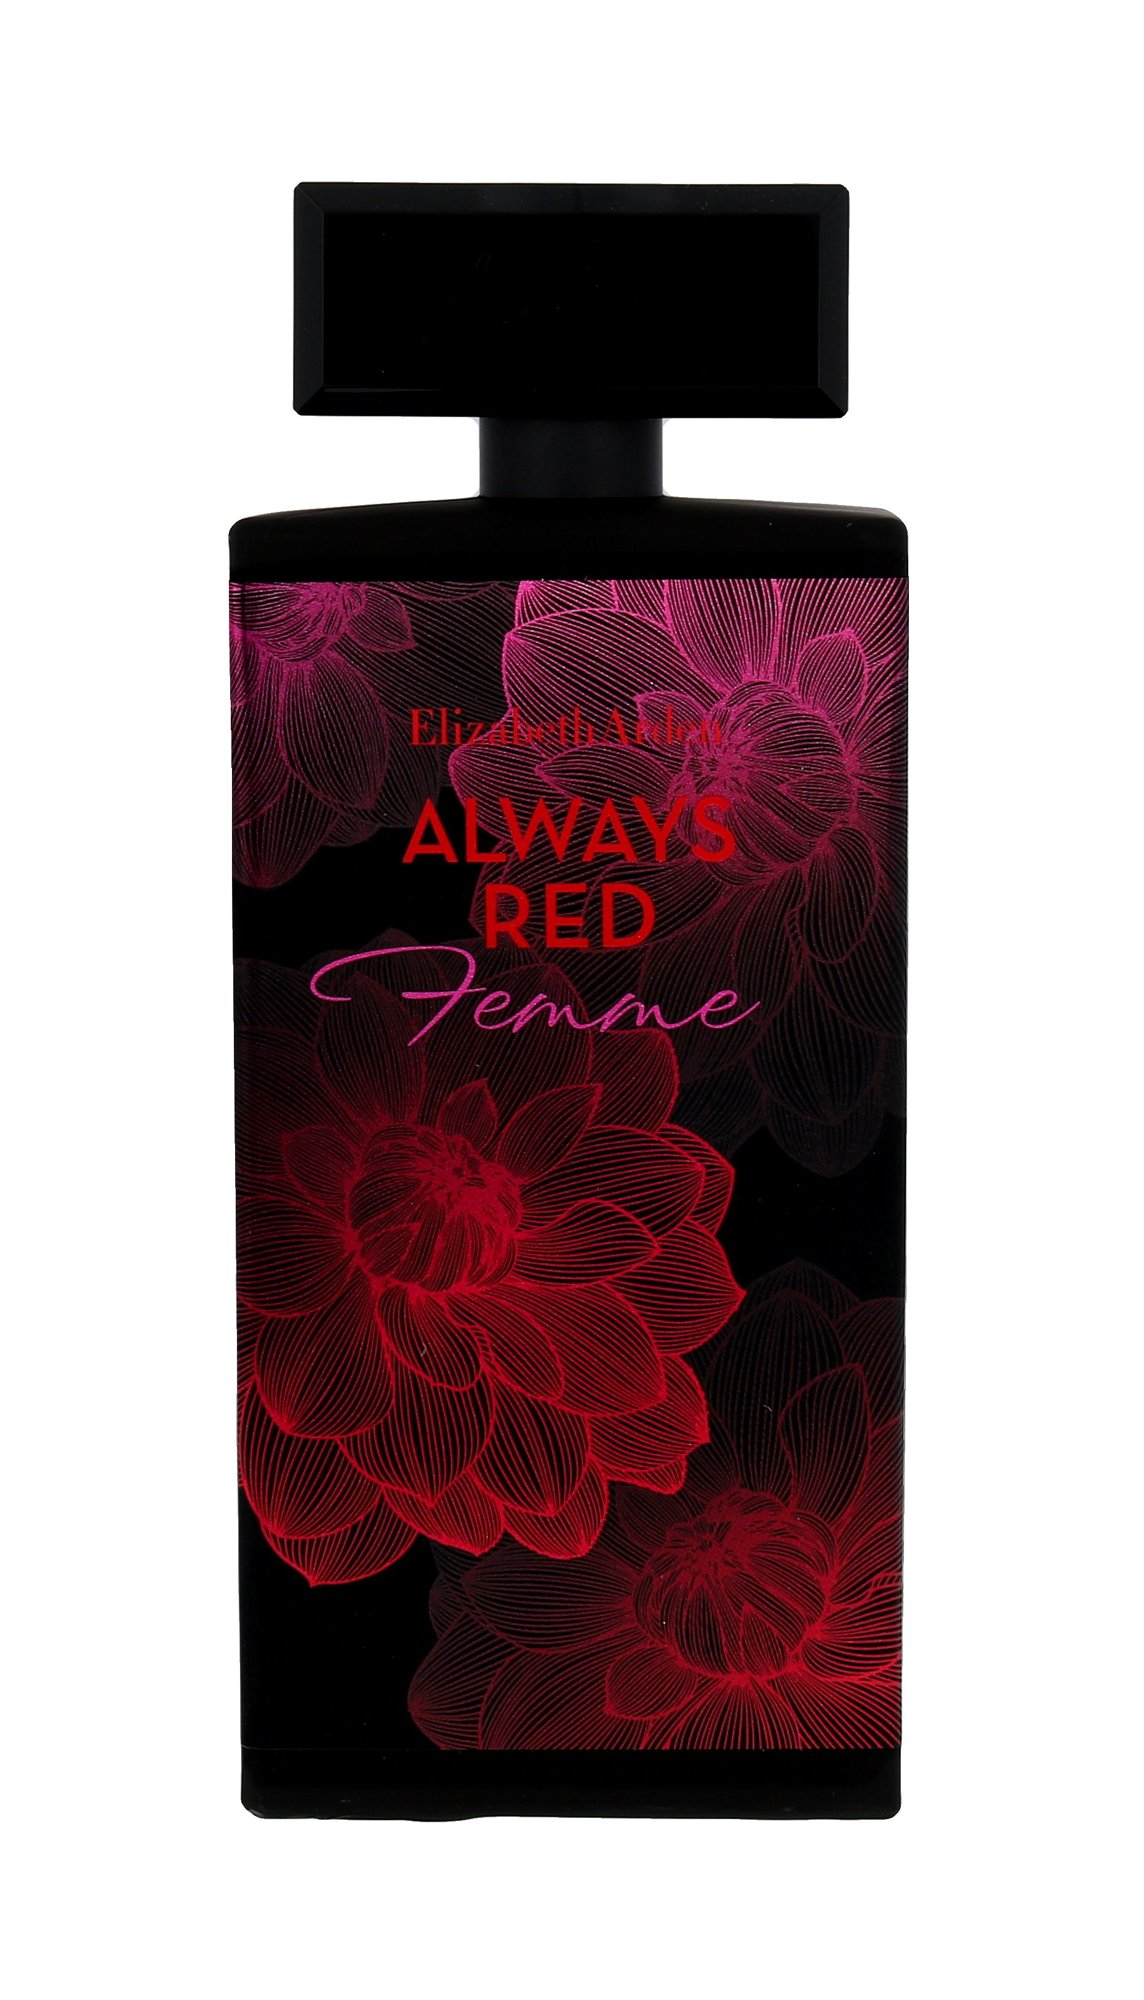 Elizabeth Arden Always Red Femme EDT 100ml